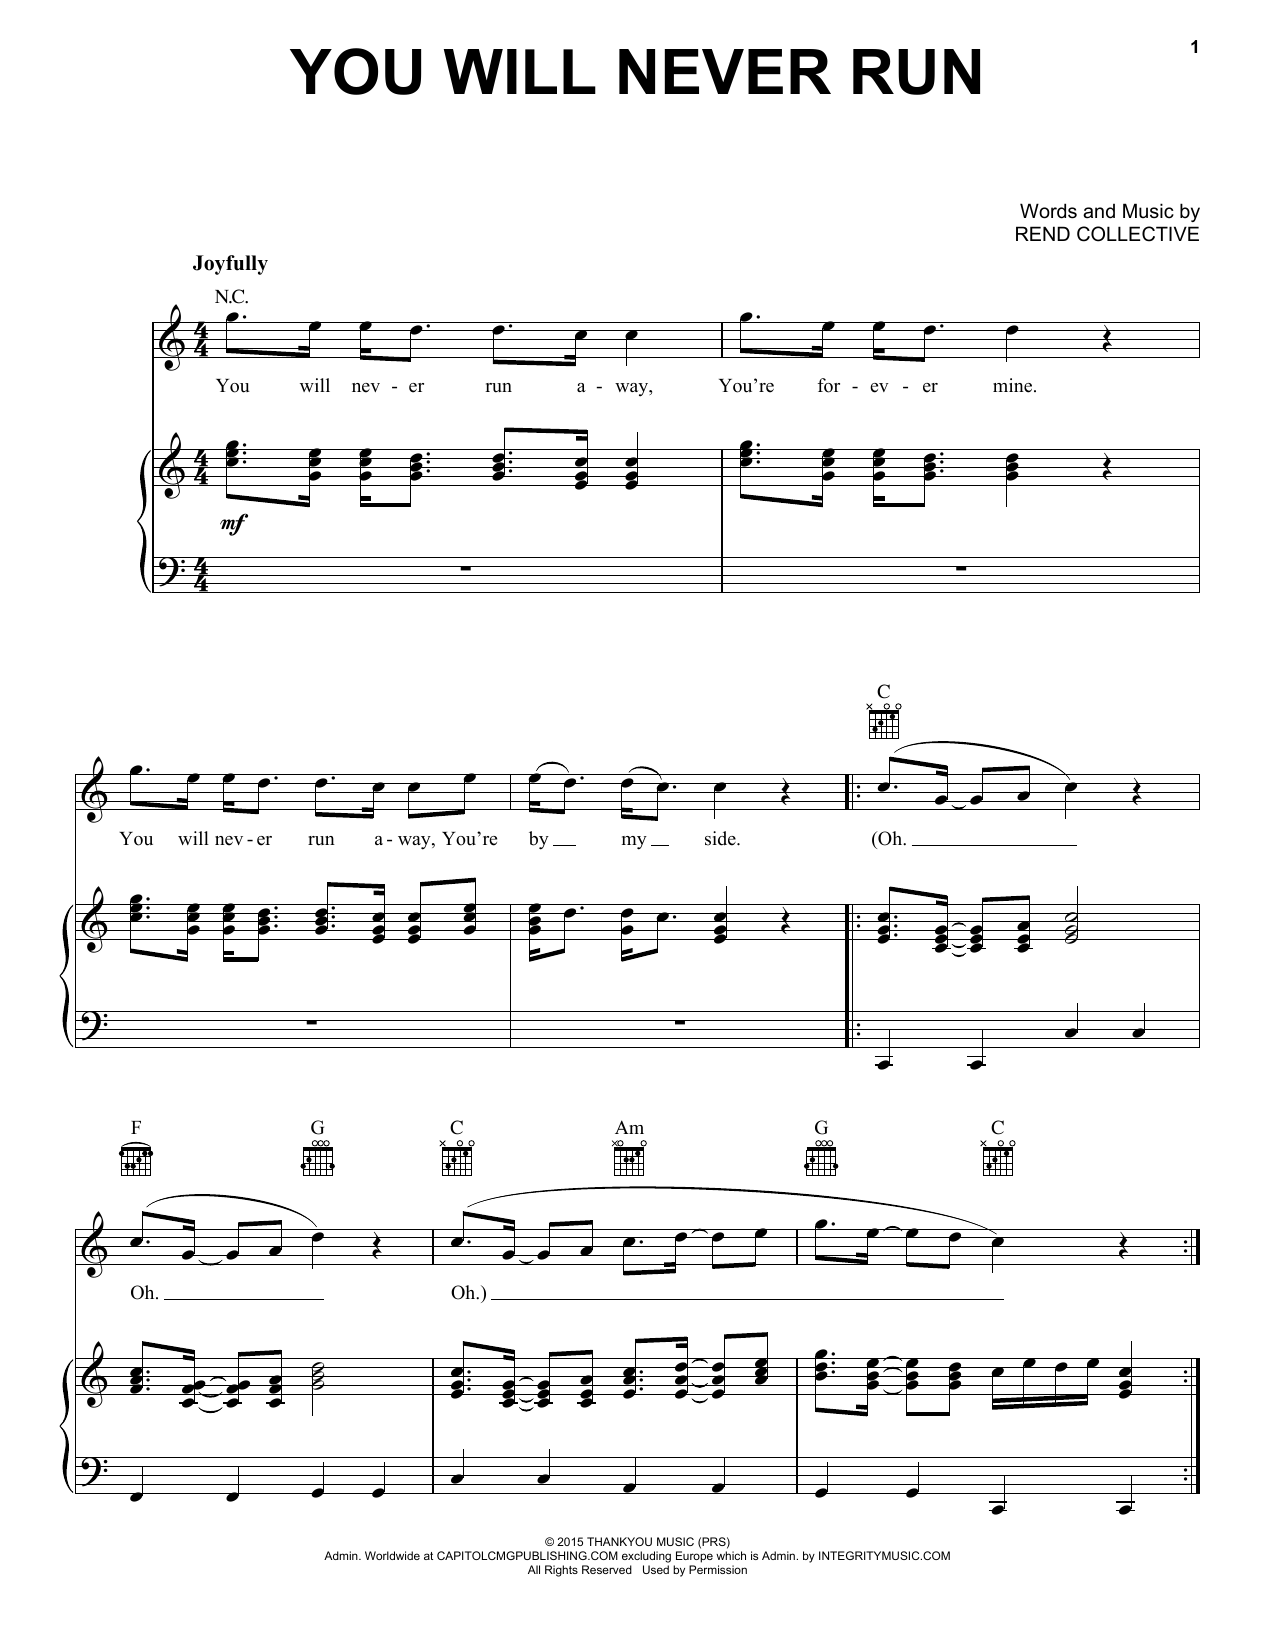 Rend Collective You Will Never Run Sheet Music Notes, Chords   Download  Printable Piano, Vocal & Guitar Right Hand Melody PDF Score   SKU 15